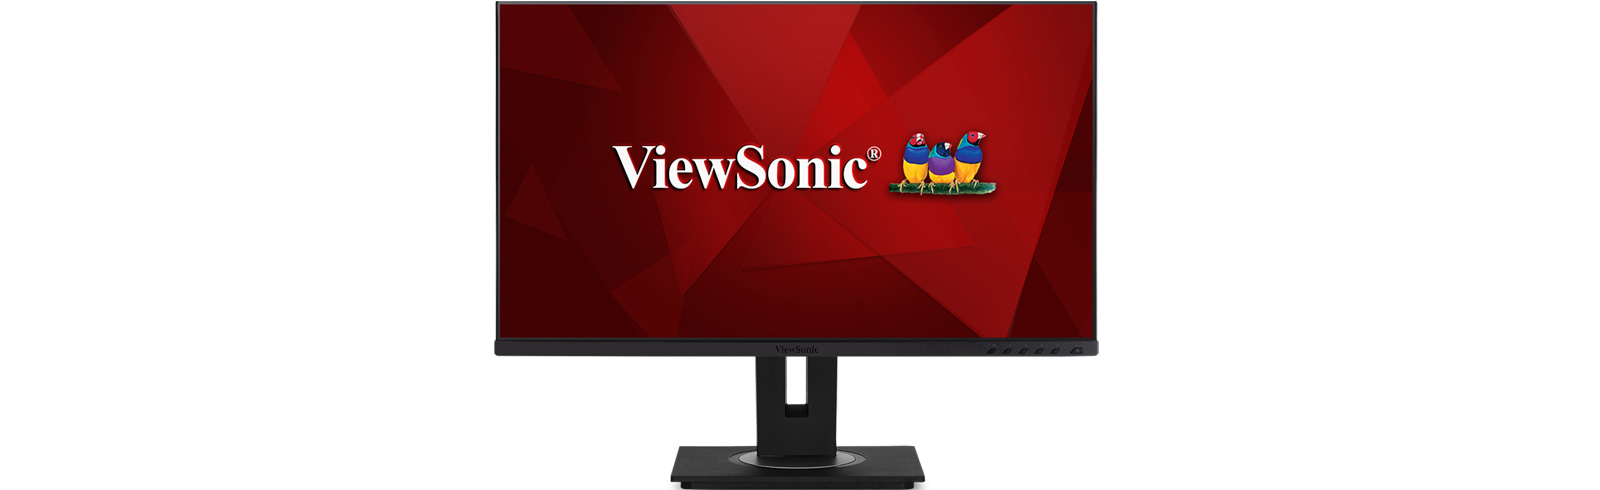 ViewSonic VG2756-4K and ViewSonic VG2756-2K docking monitors are released